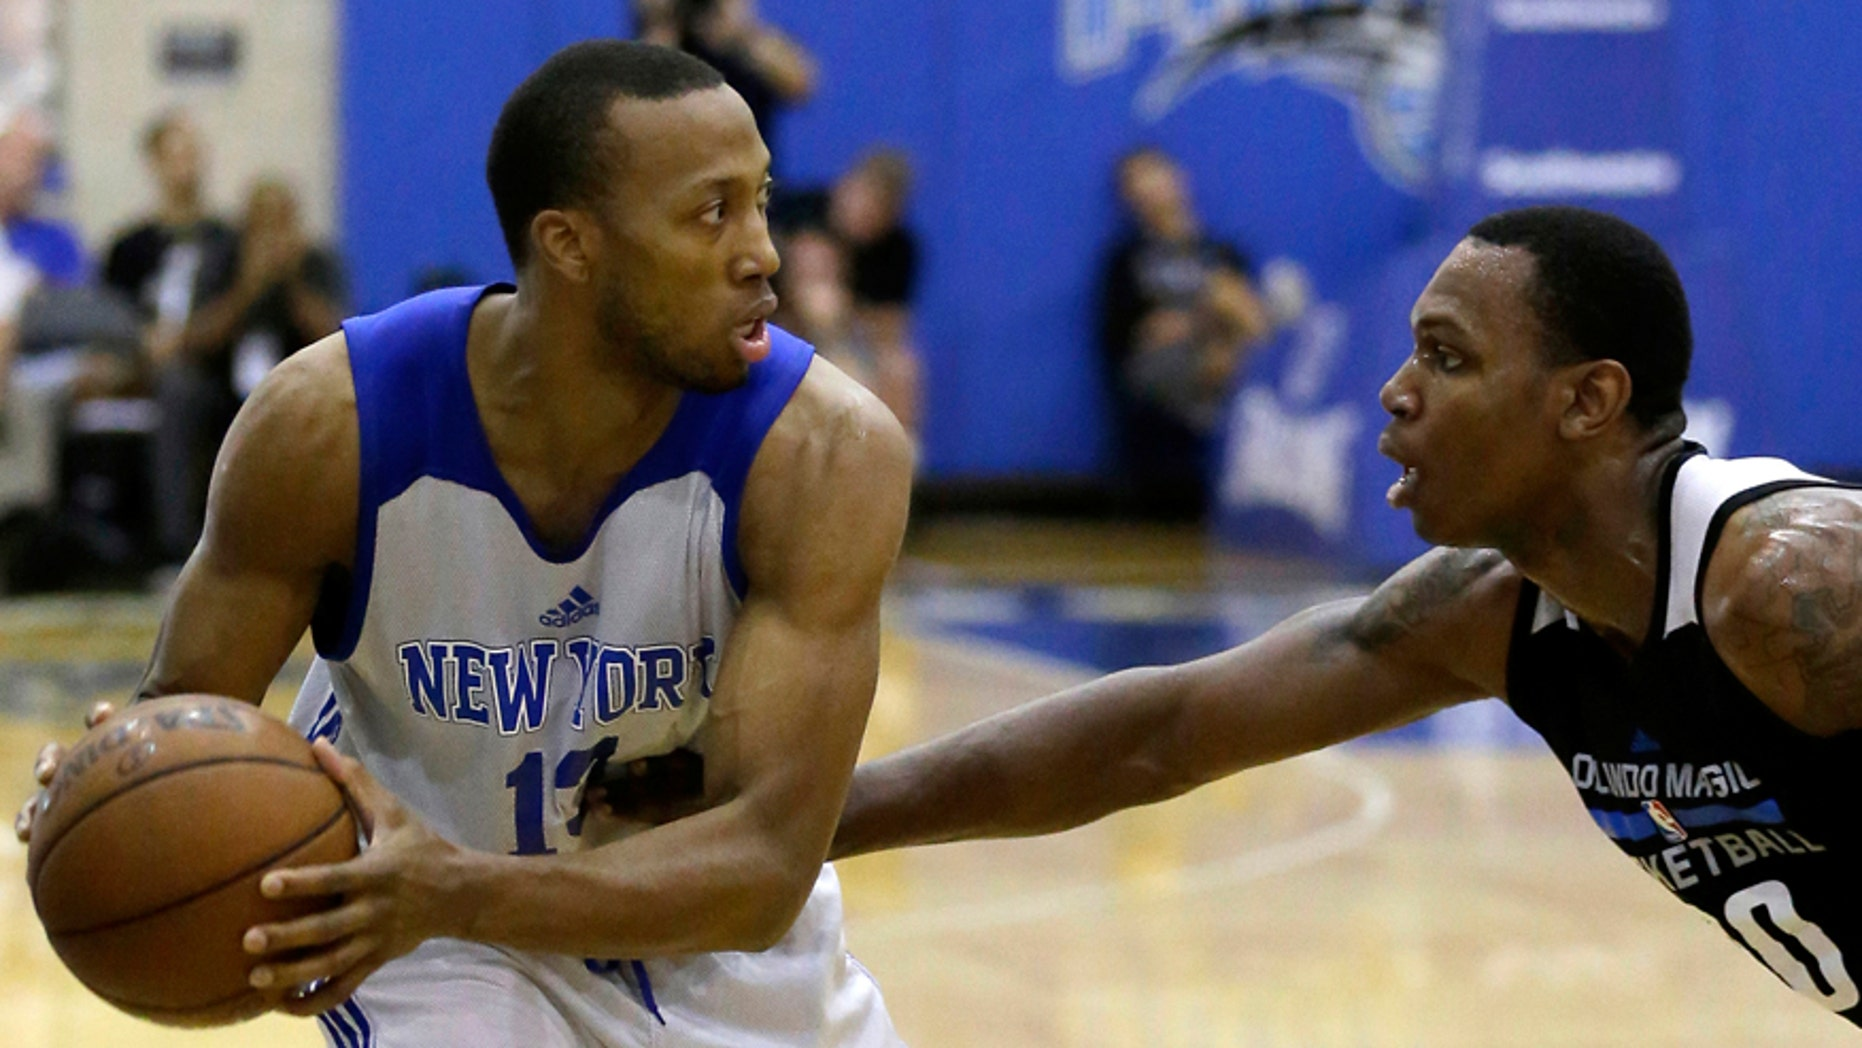 FILE - This is a Wednesday, July 6, 2016  file photo of New York Knicks' Akil Mitchell, left, as he looks to pass the ball around Orlando Magic White's Treveon Graham during the first half of an NBA summer league basketball game in Orlando, Fla. American basketball player Akil Mitchell's eye popped out of its socket after he was poked in the face while going for a rebound during a game in New Zealand  Thursday Jan. 26, 2017 .(AP Photo/John Raoux, File)